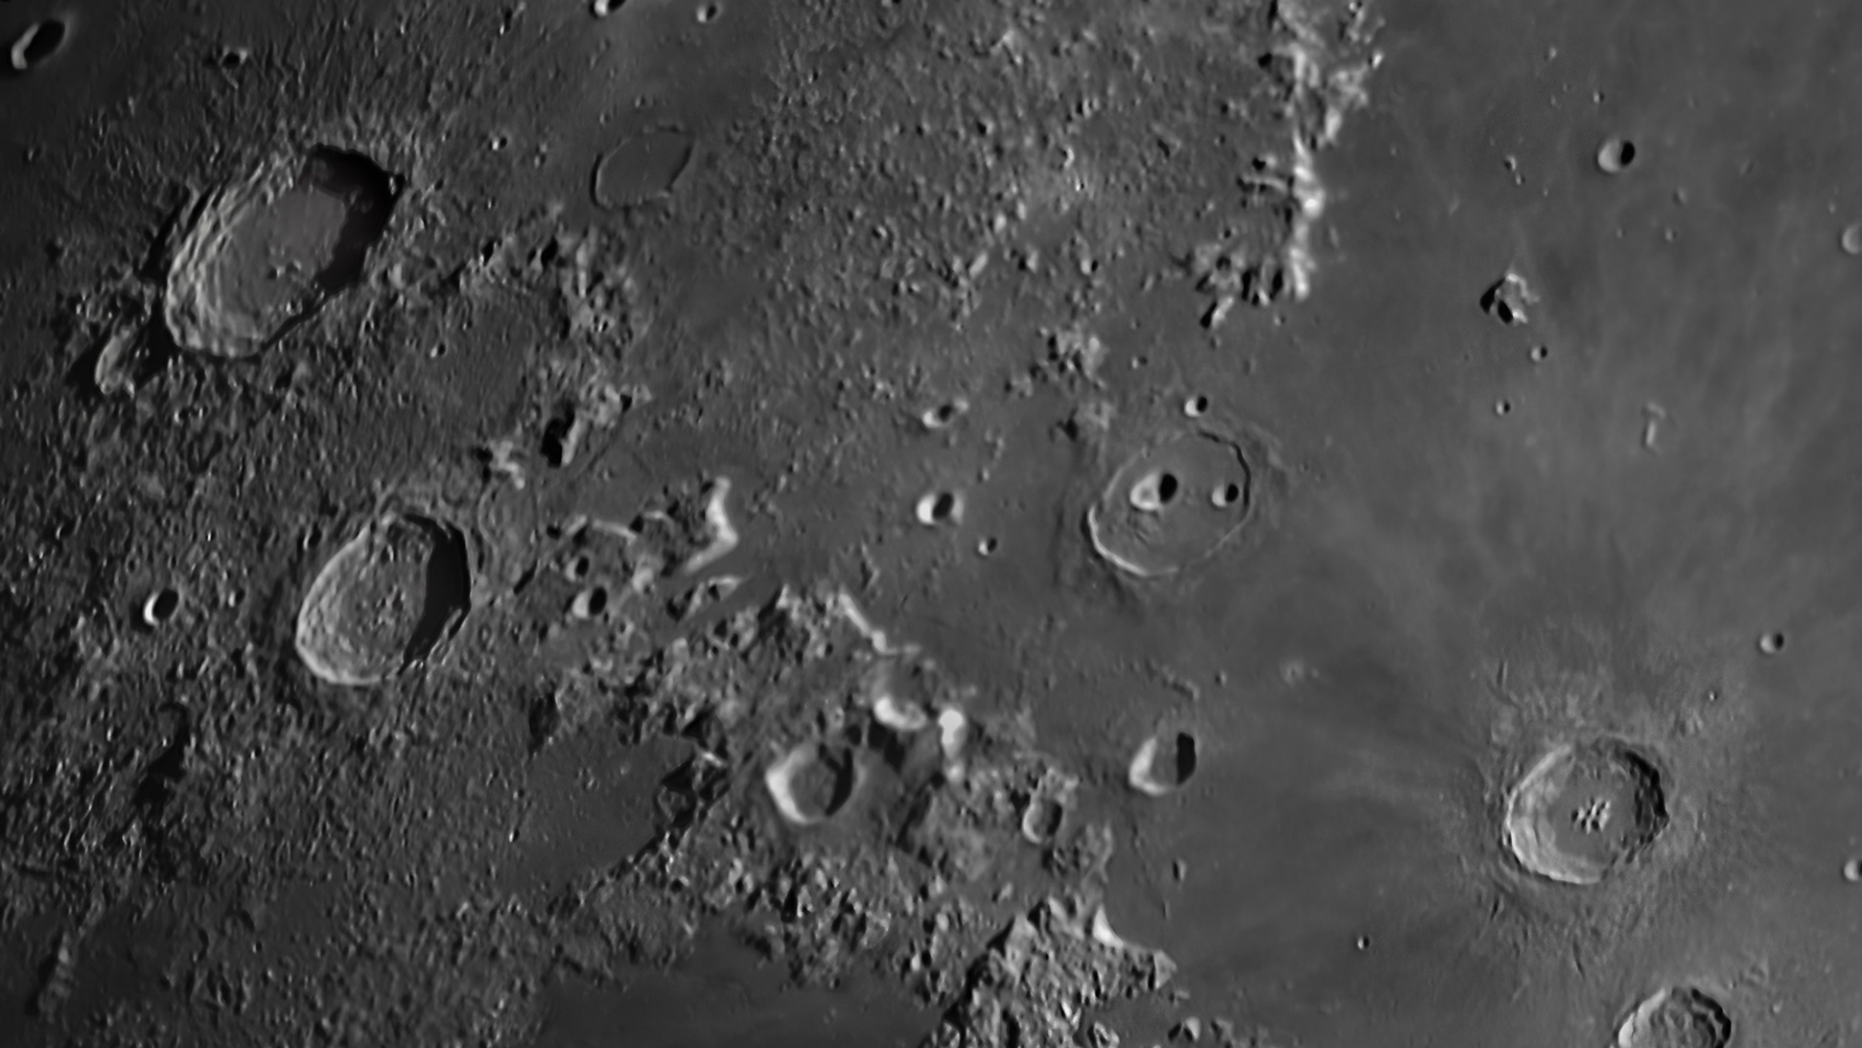 A lunar landscape scene captured from the Cumeada Observatory in Portugal's Dark Sky Alqueva Reserve shows the impact craters of Aristoteles, Eudoxus, Aristillus and Autolycus.